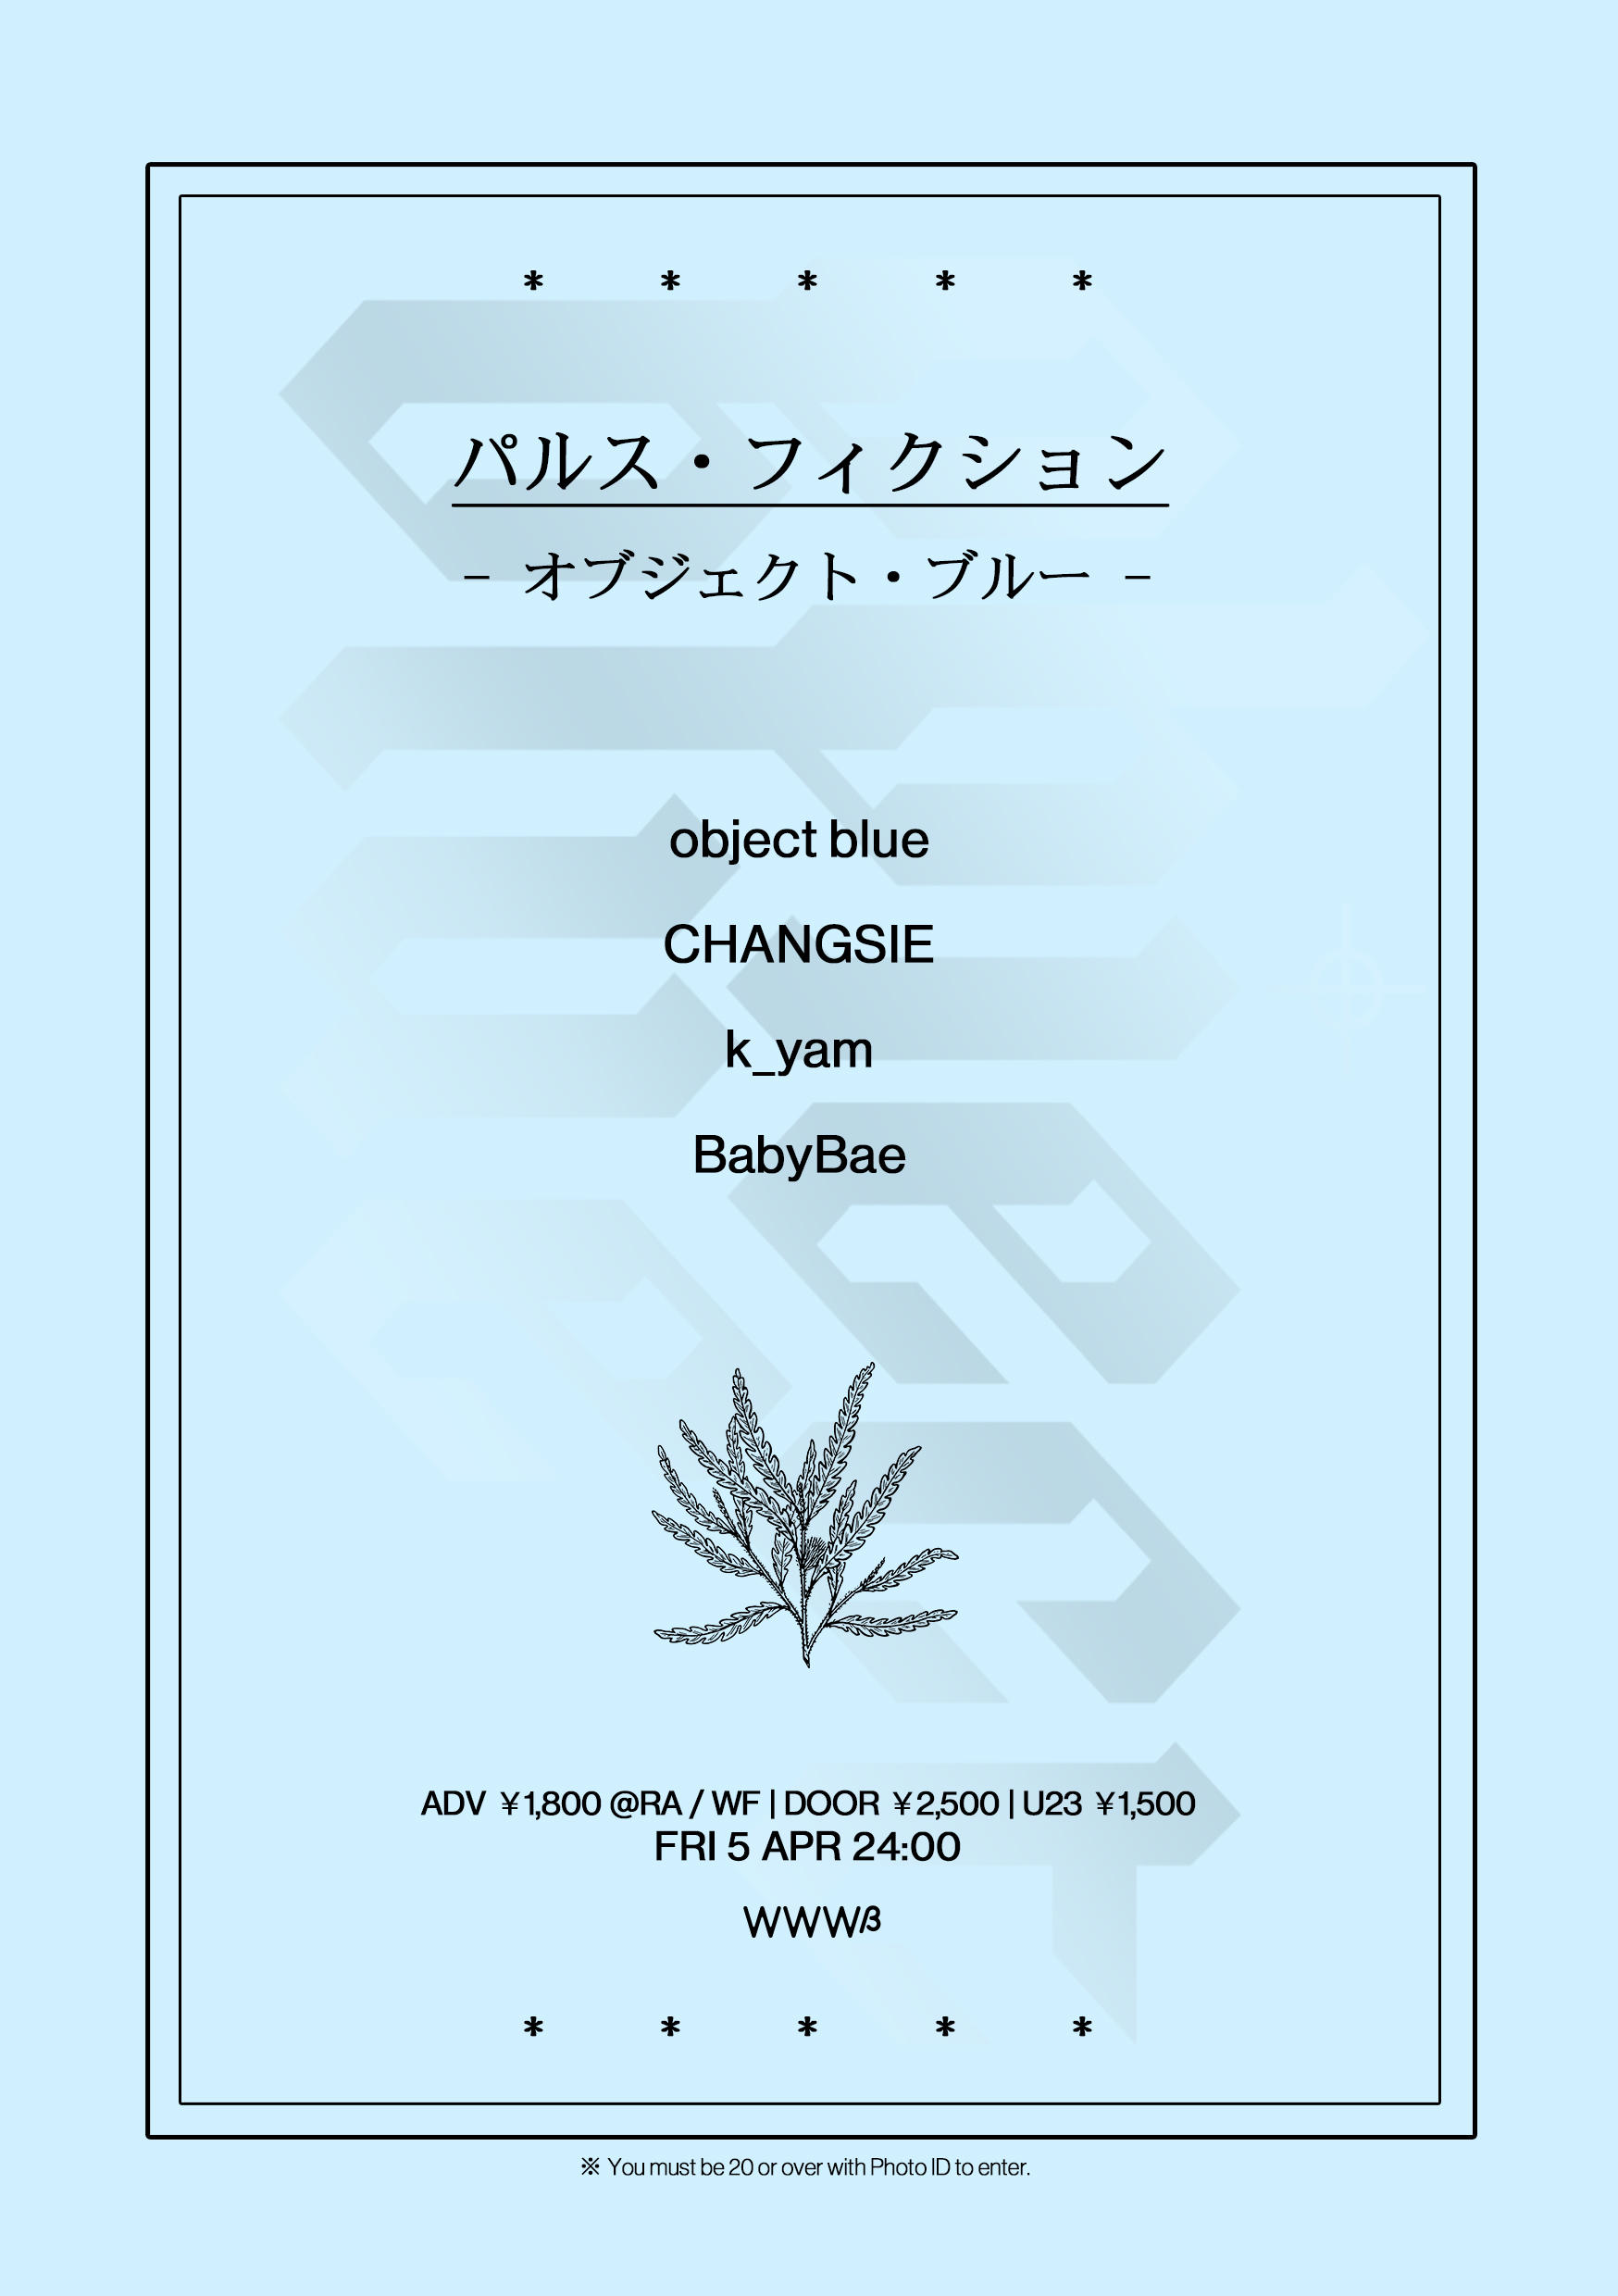 object blue [London] /  CHANGSIE / k_yam [N.O.S. / REMEDY] / BabyBae